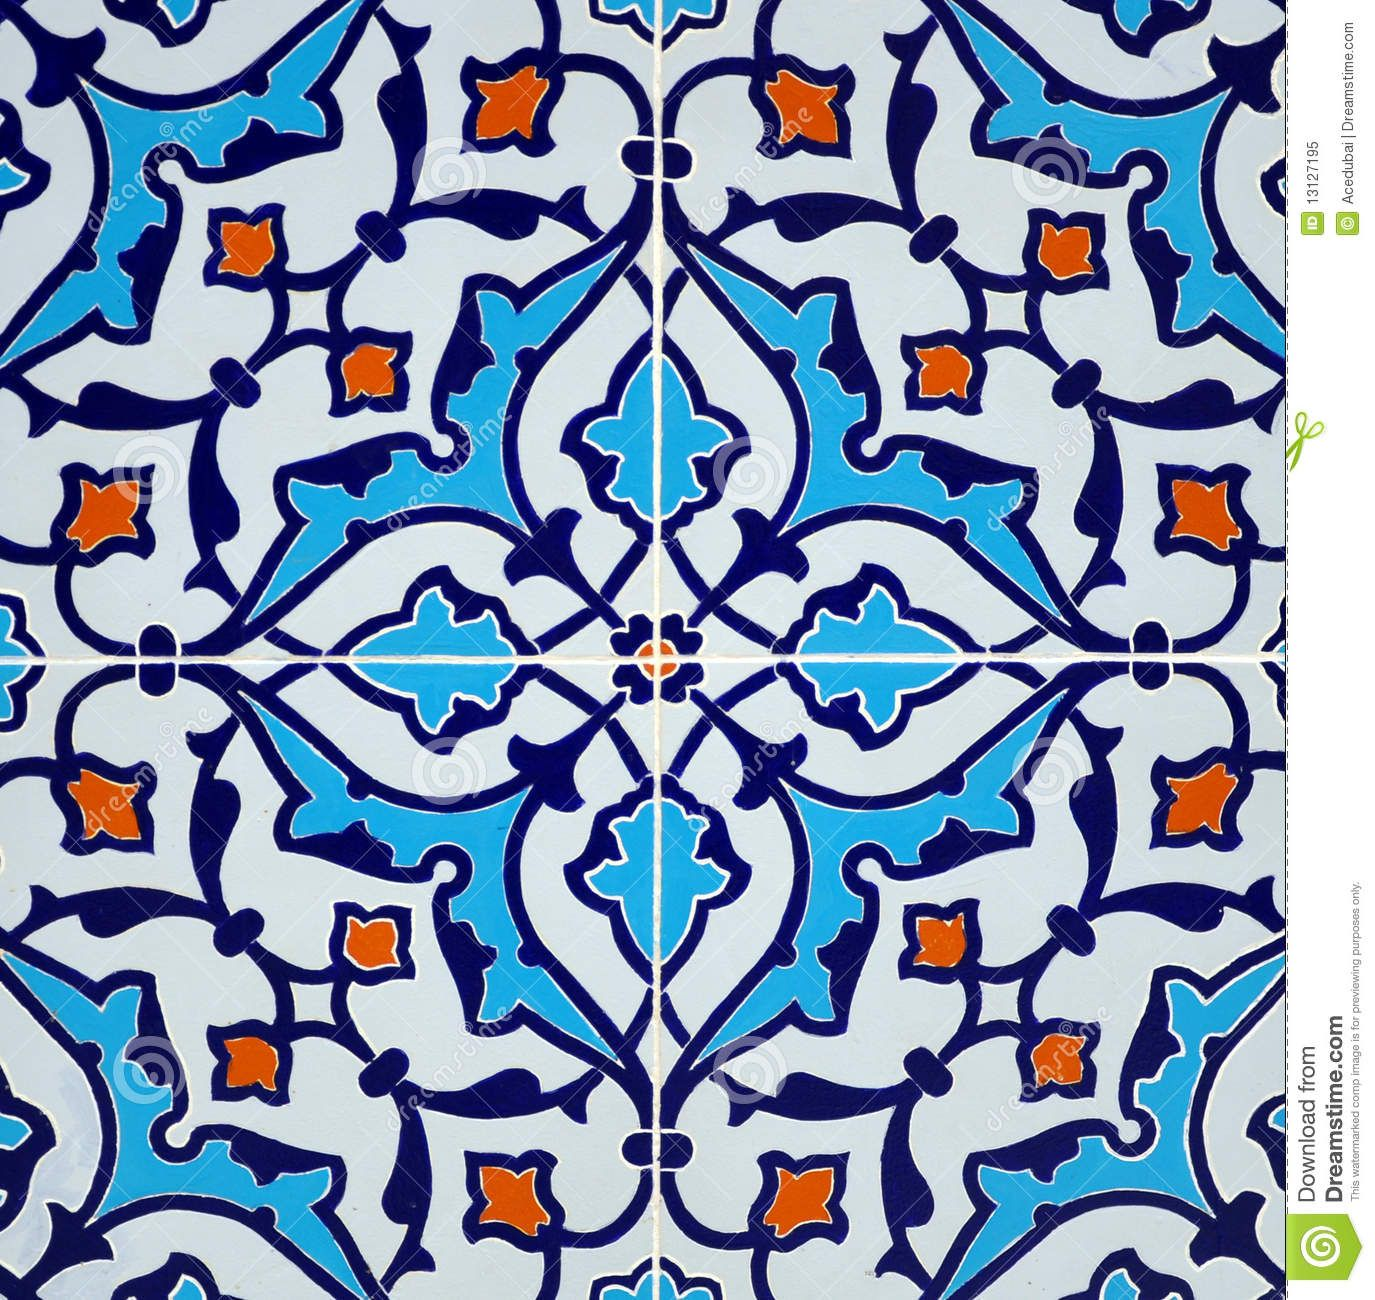 Persian Tile Design From Over 43 Million High Quality Stock Photos Images Vectors Sign Up For Free Today Image 13127195